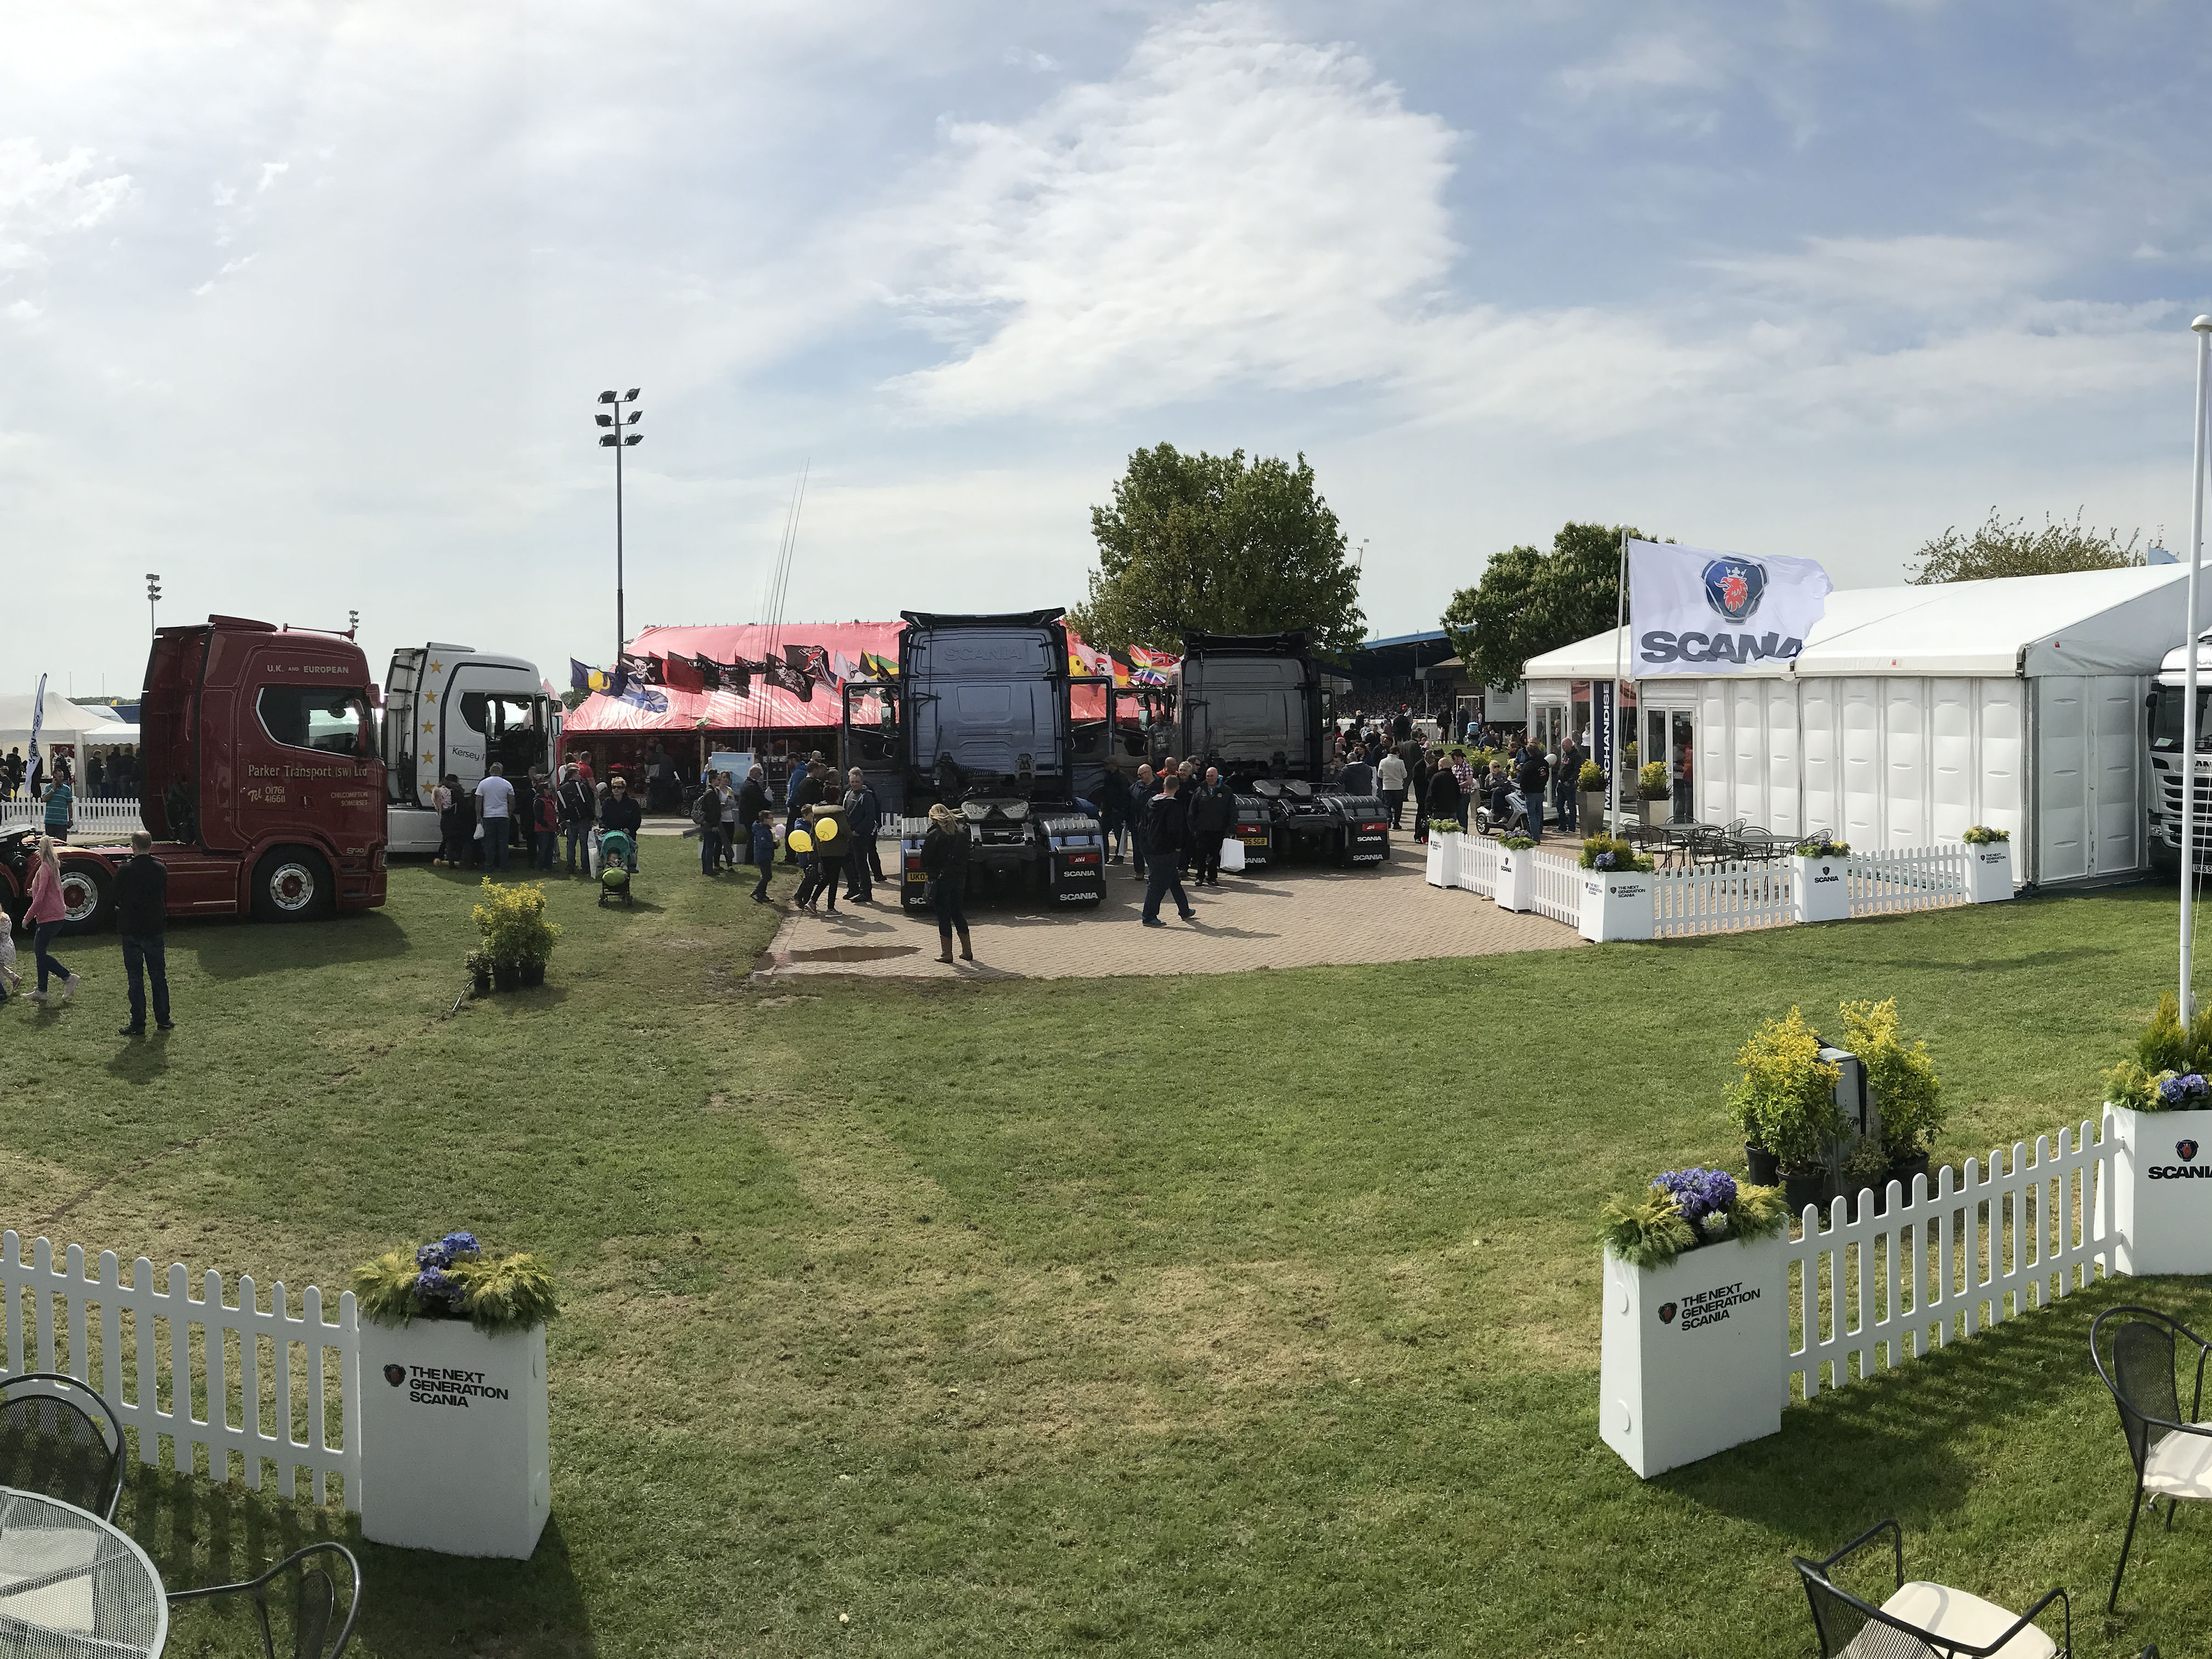 Come and join Scania at TruckFest Peterborough